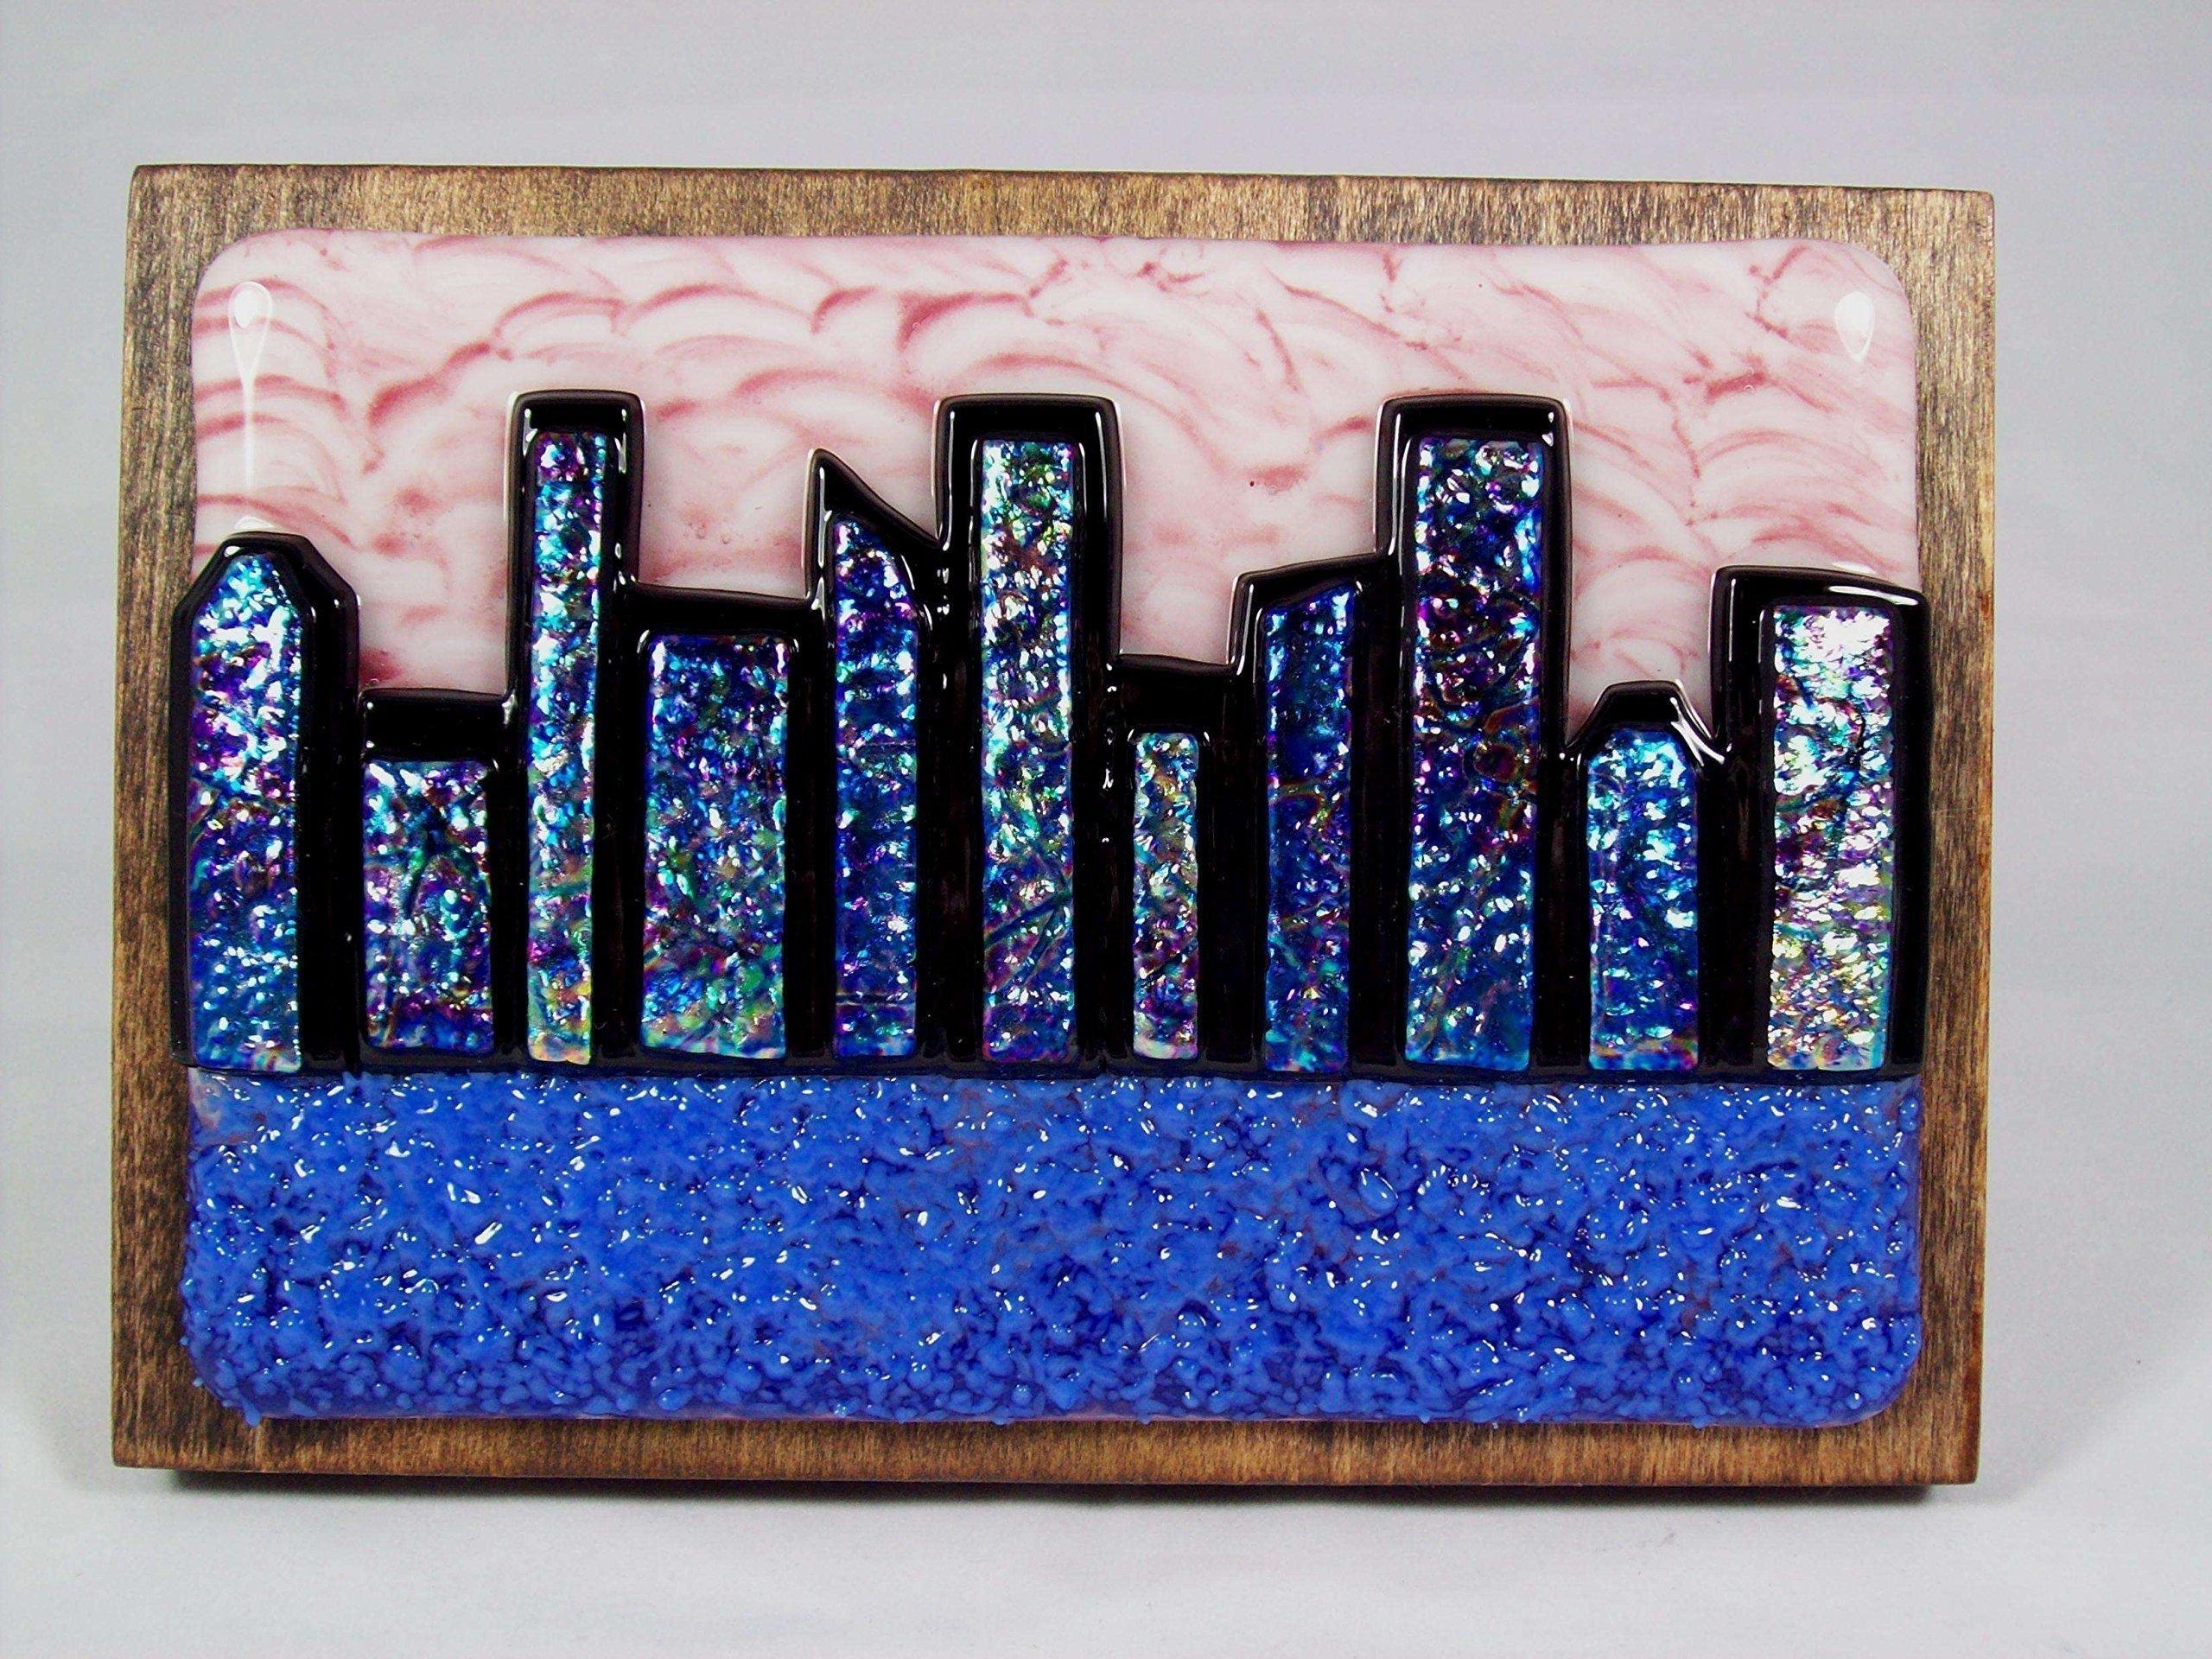 "Abstract City Skyline 2"" Handmade Fused Glass Wall Art (Ws68 With Regard To Abstract Fused Glass Wall Art (View 5 of 20)"